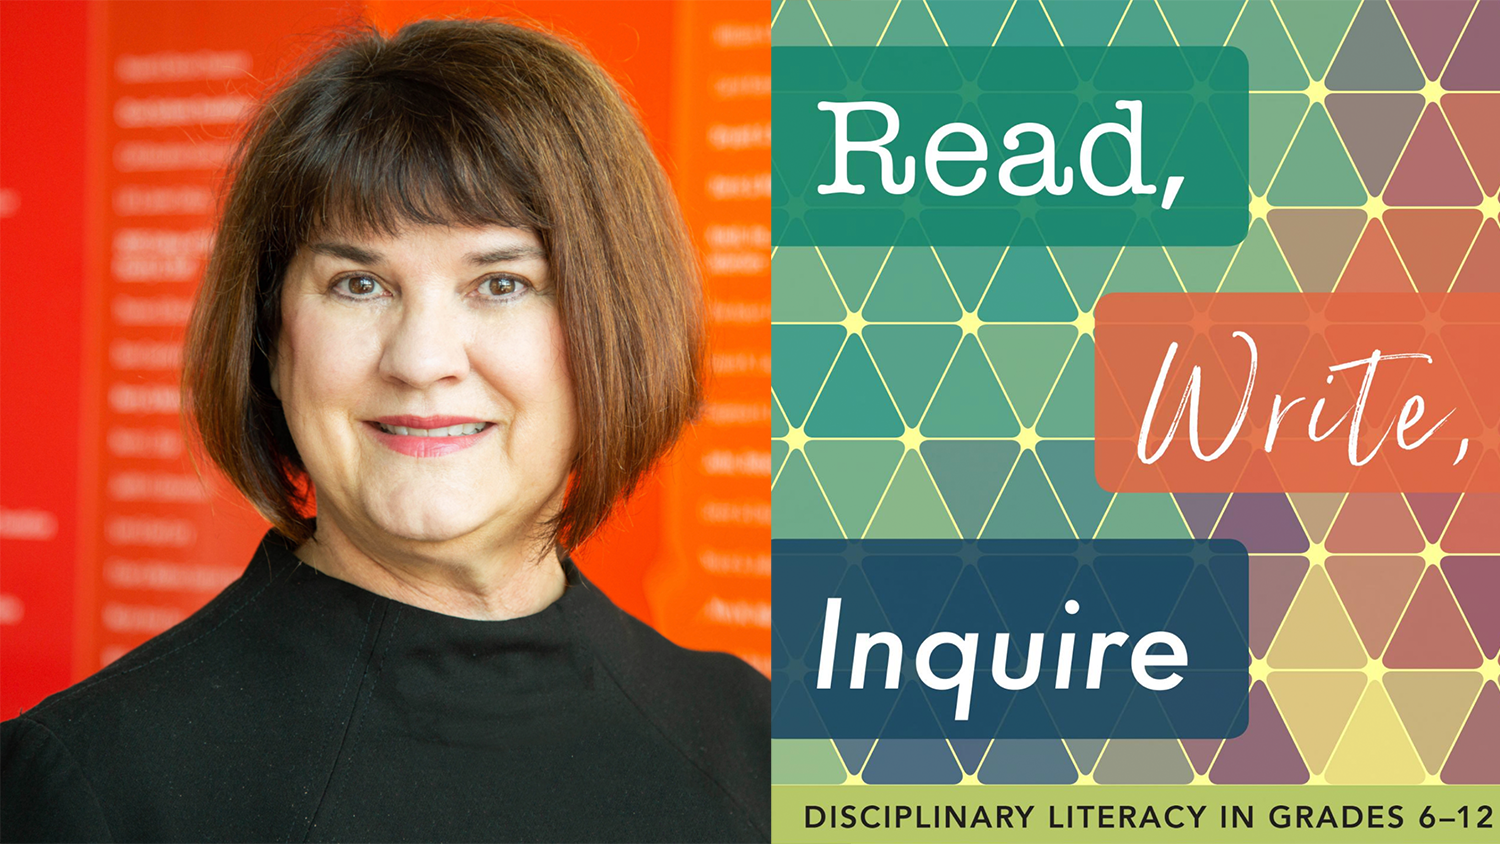 Alumni Distinguished Graduate Professor Hiller Spires, Ph.D. published a new book called Read, Write, Inquire